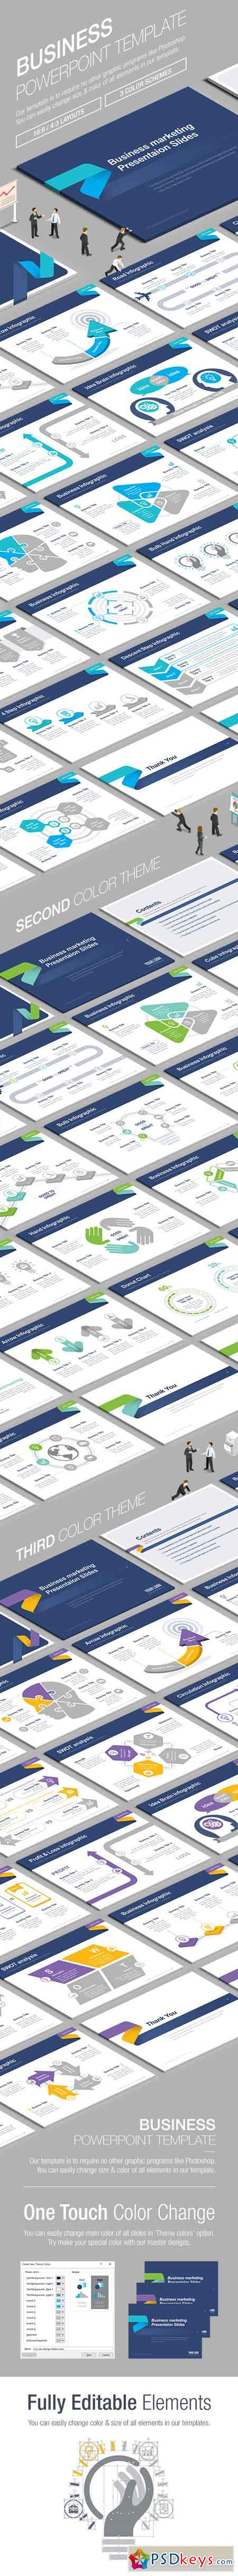 Business Powerpoint Template 006 17648242